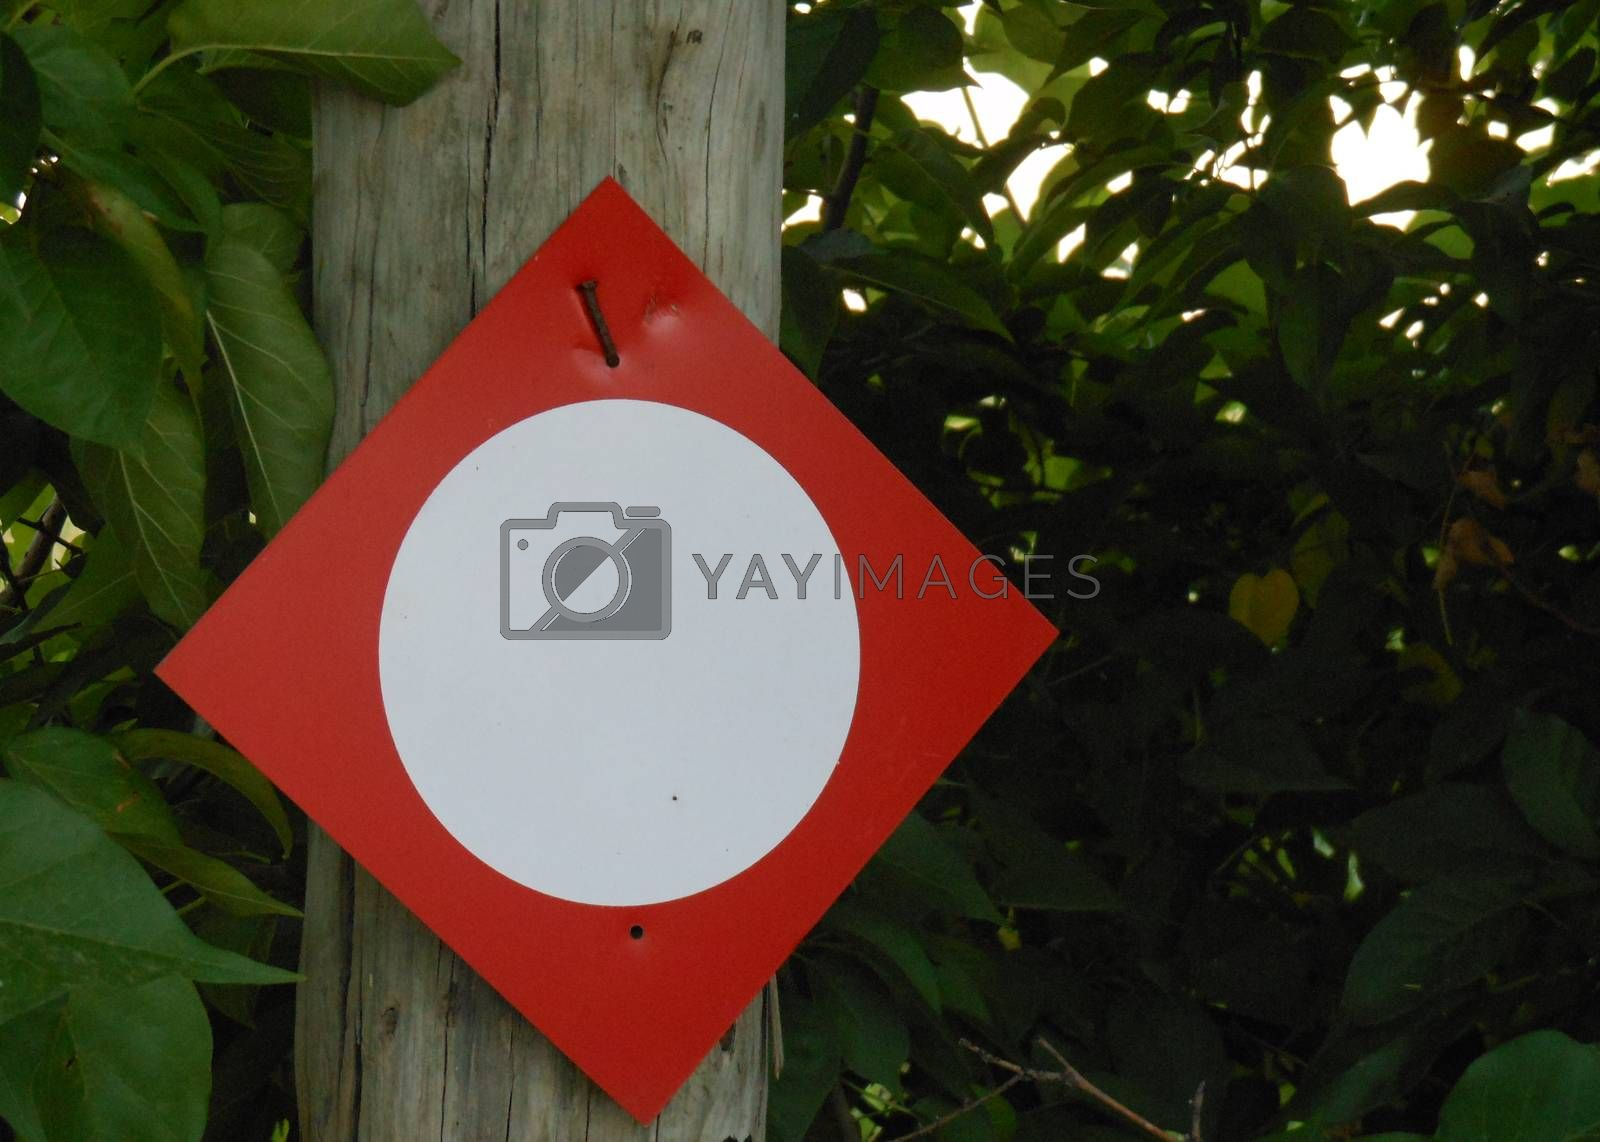 Small white circle sign on red background placed on a tree